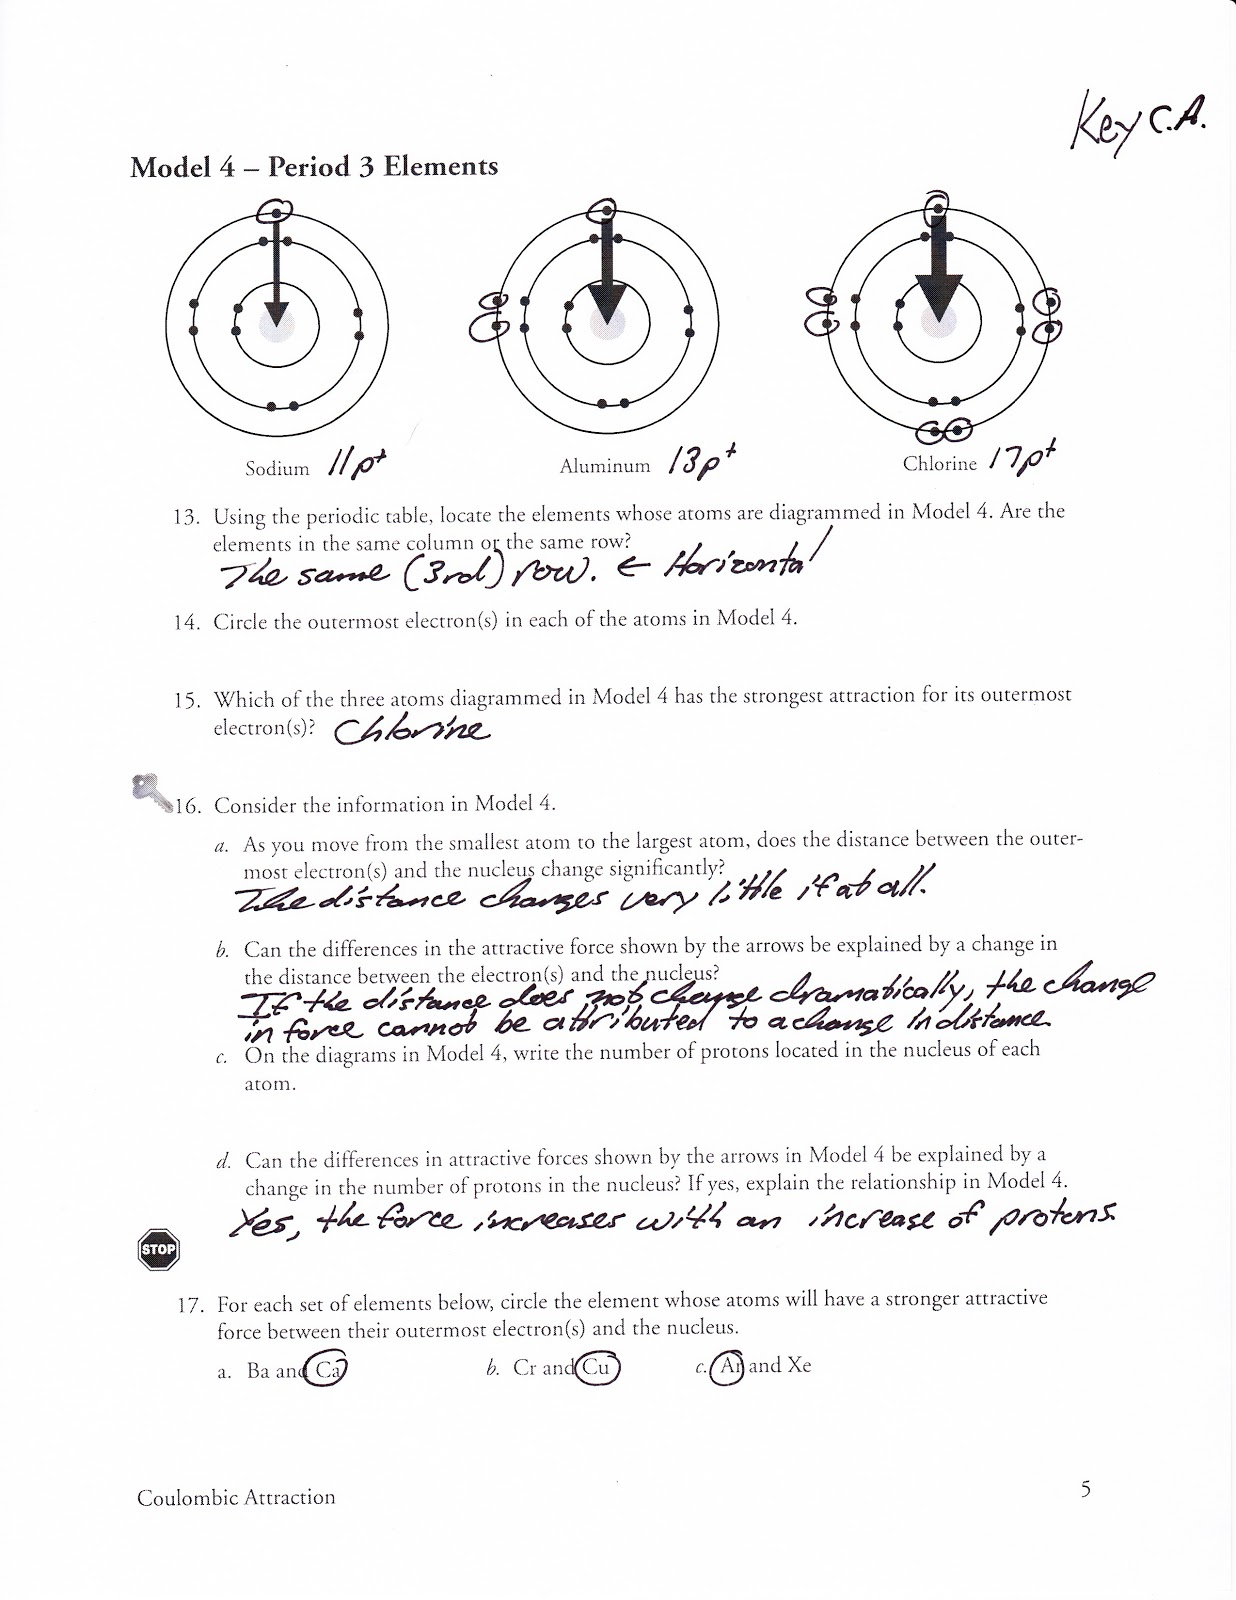 Physical and chemical properties pogil answer key array advanced periodic trends worksheet answer key pogil kidz activities rh reedaudio com fandeluxe Images